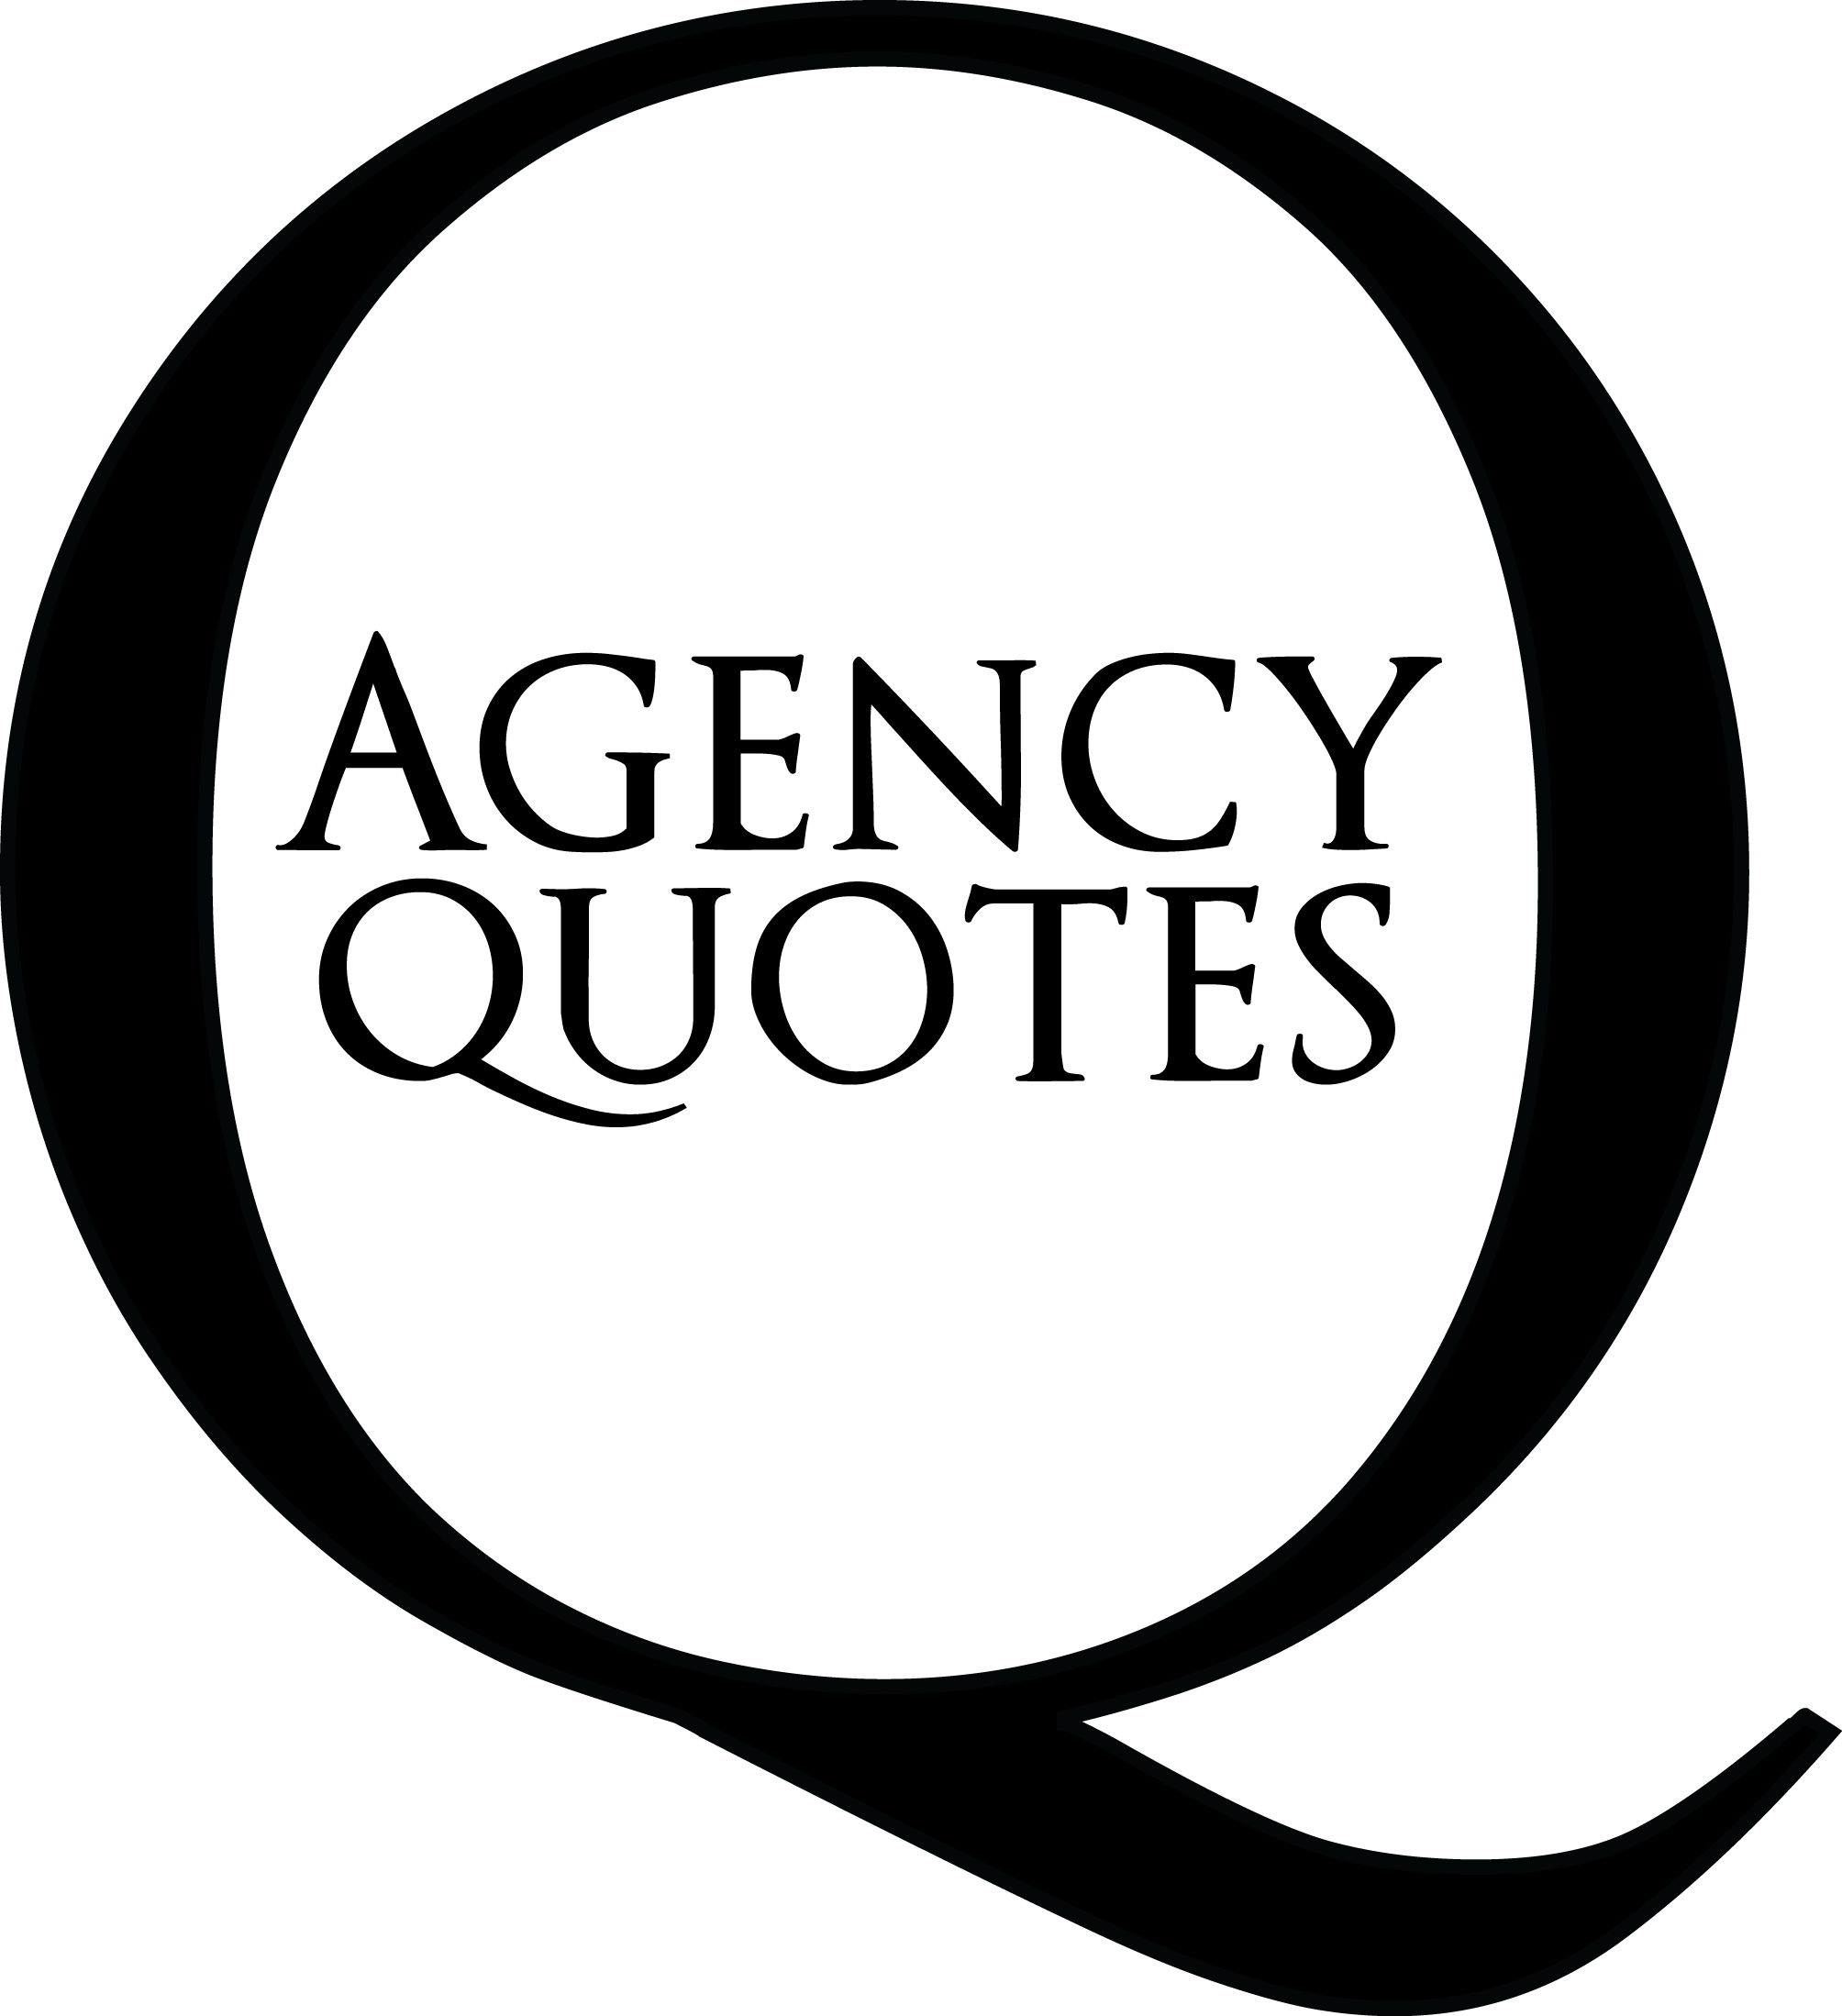 Agency quote #3